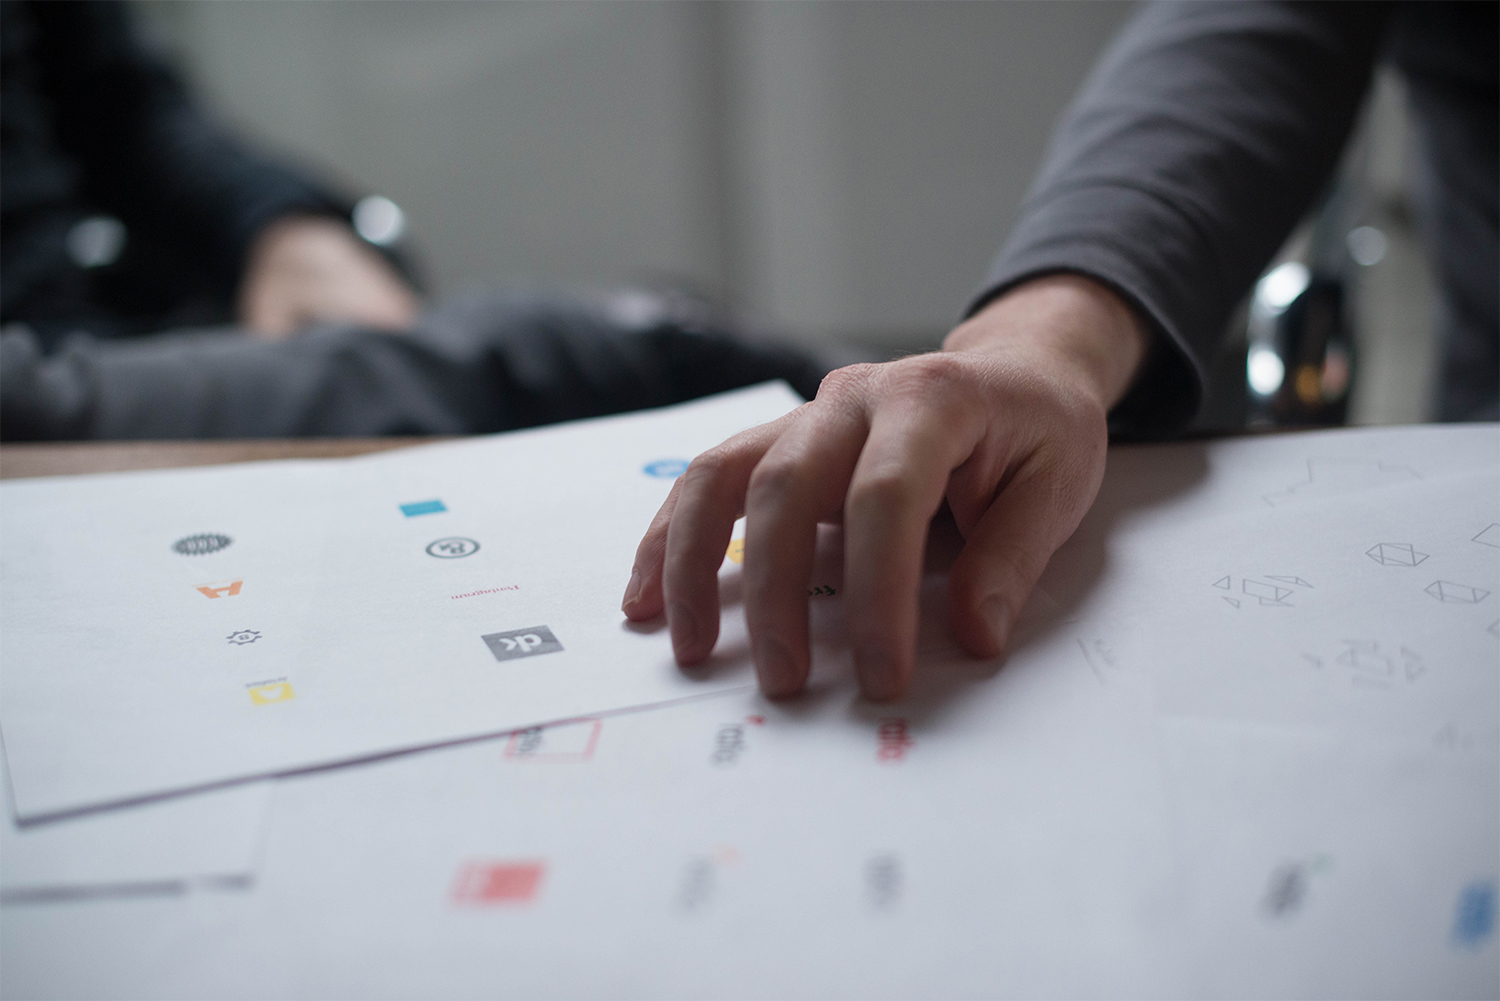 How to provide your designer with helpful feedback